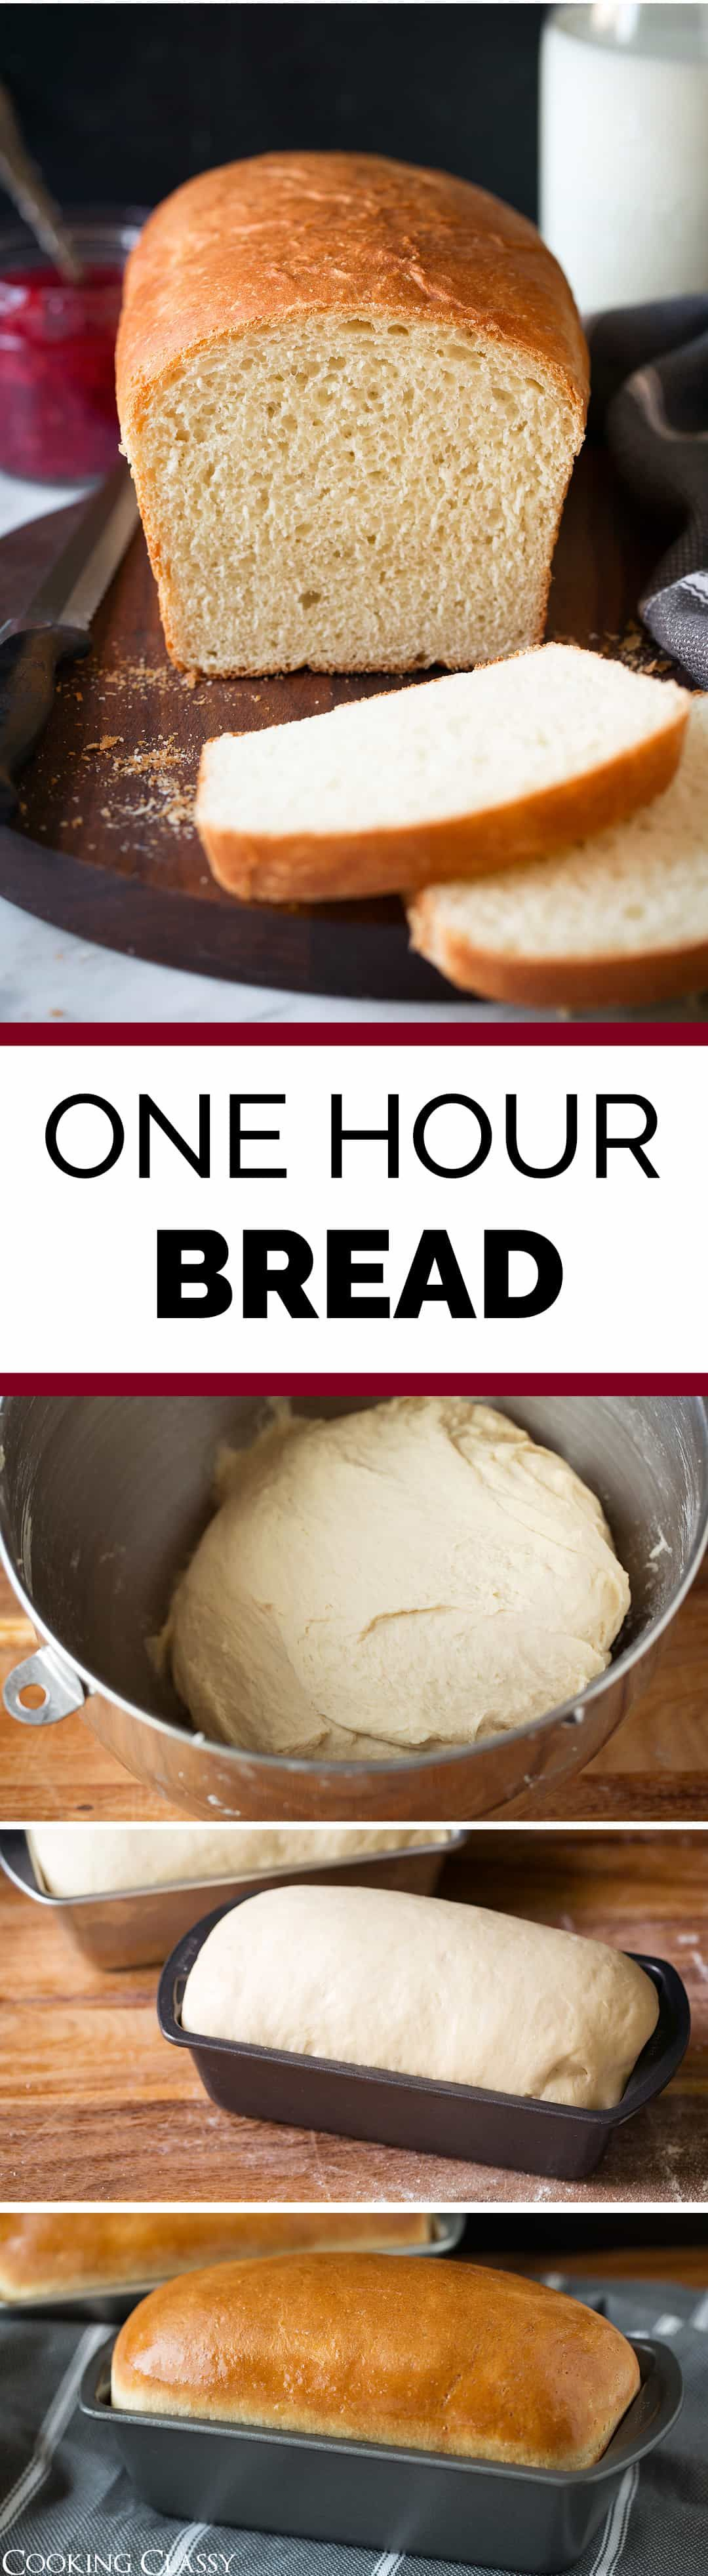 One Hour Bread - Cooking Classy - White bread recipe that's ready from  start to finish